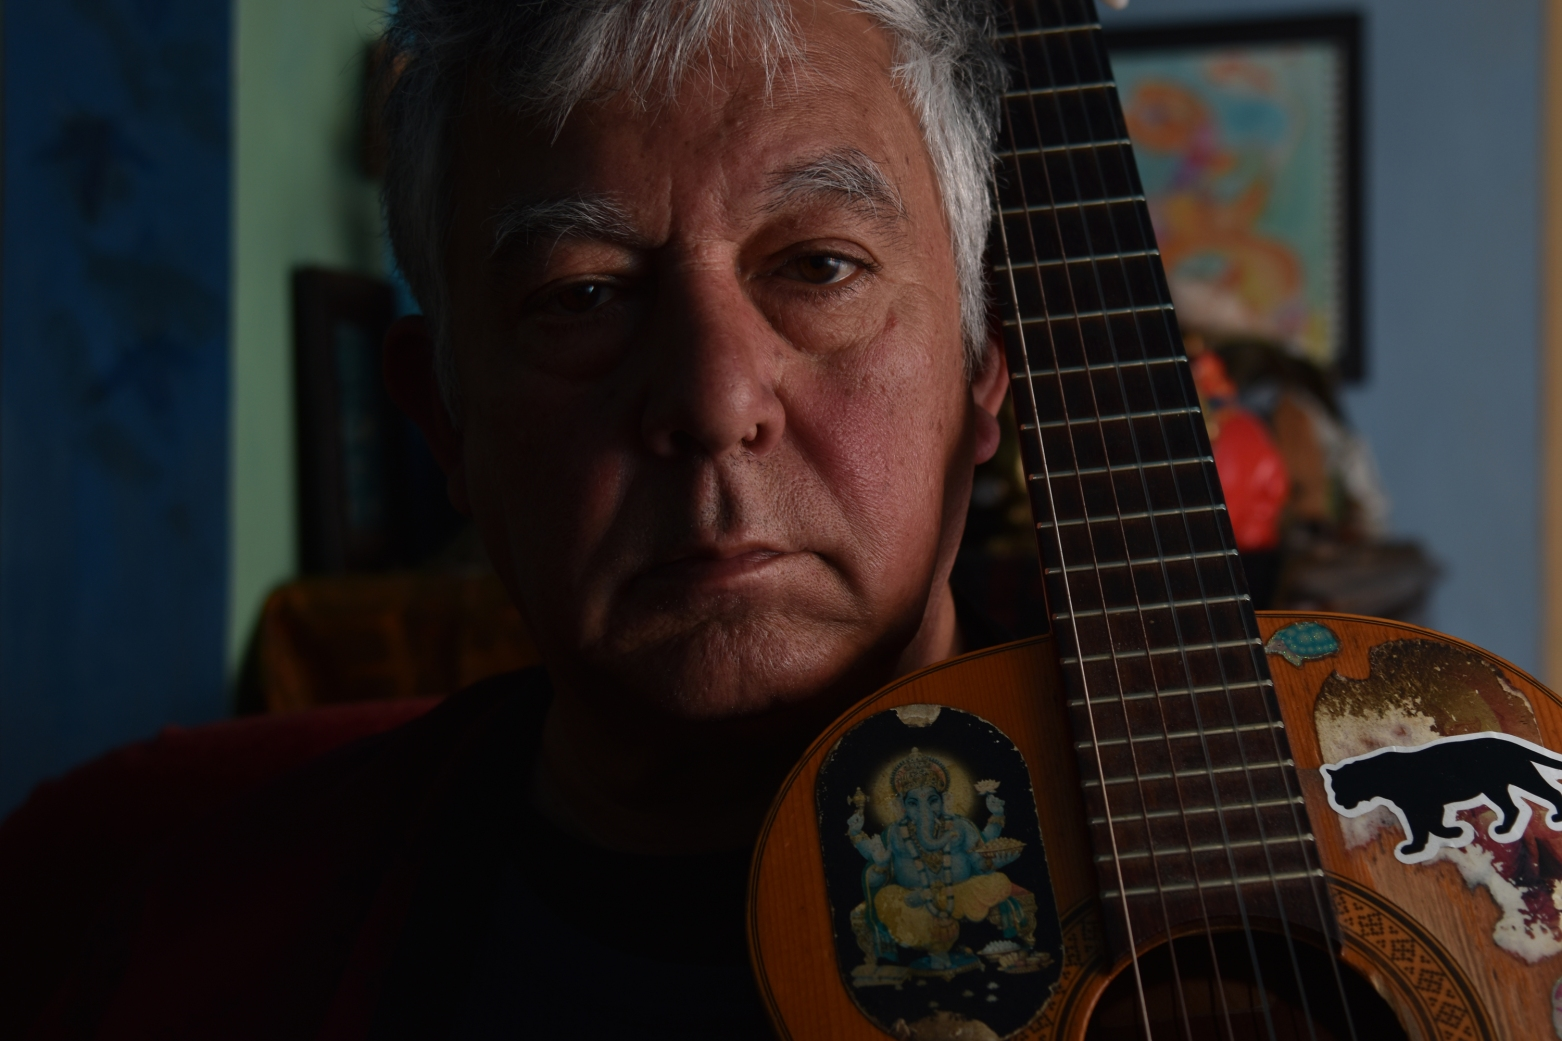 Musician and artist Jerry Ferraz poses for a photo at his home in San Francisco, Calif., on Saturday, April 7, 2018. (Boone Ashworth)